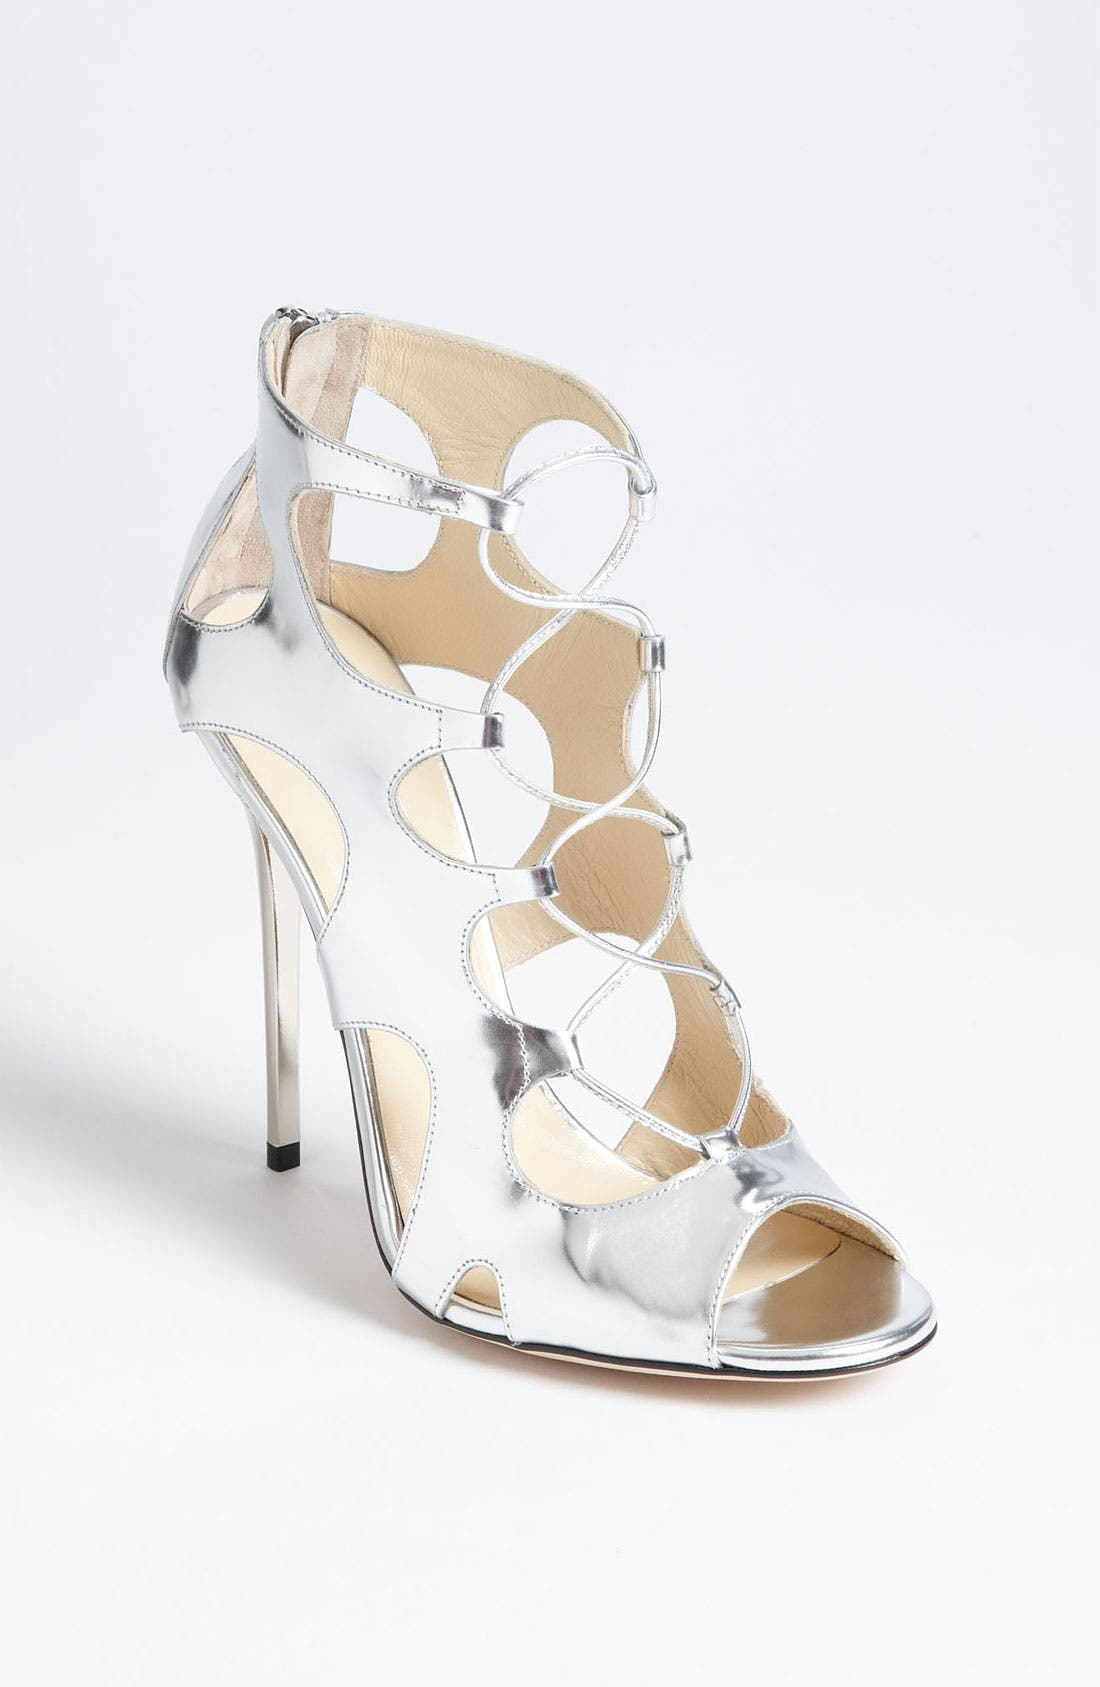 Alternate Image 1 Selected - Jimmy Choo 'Diffuse' Sandal